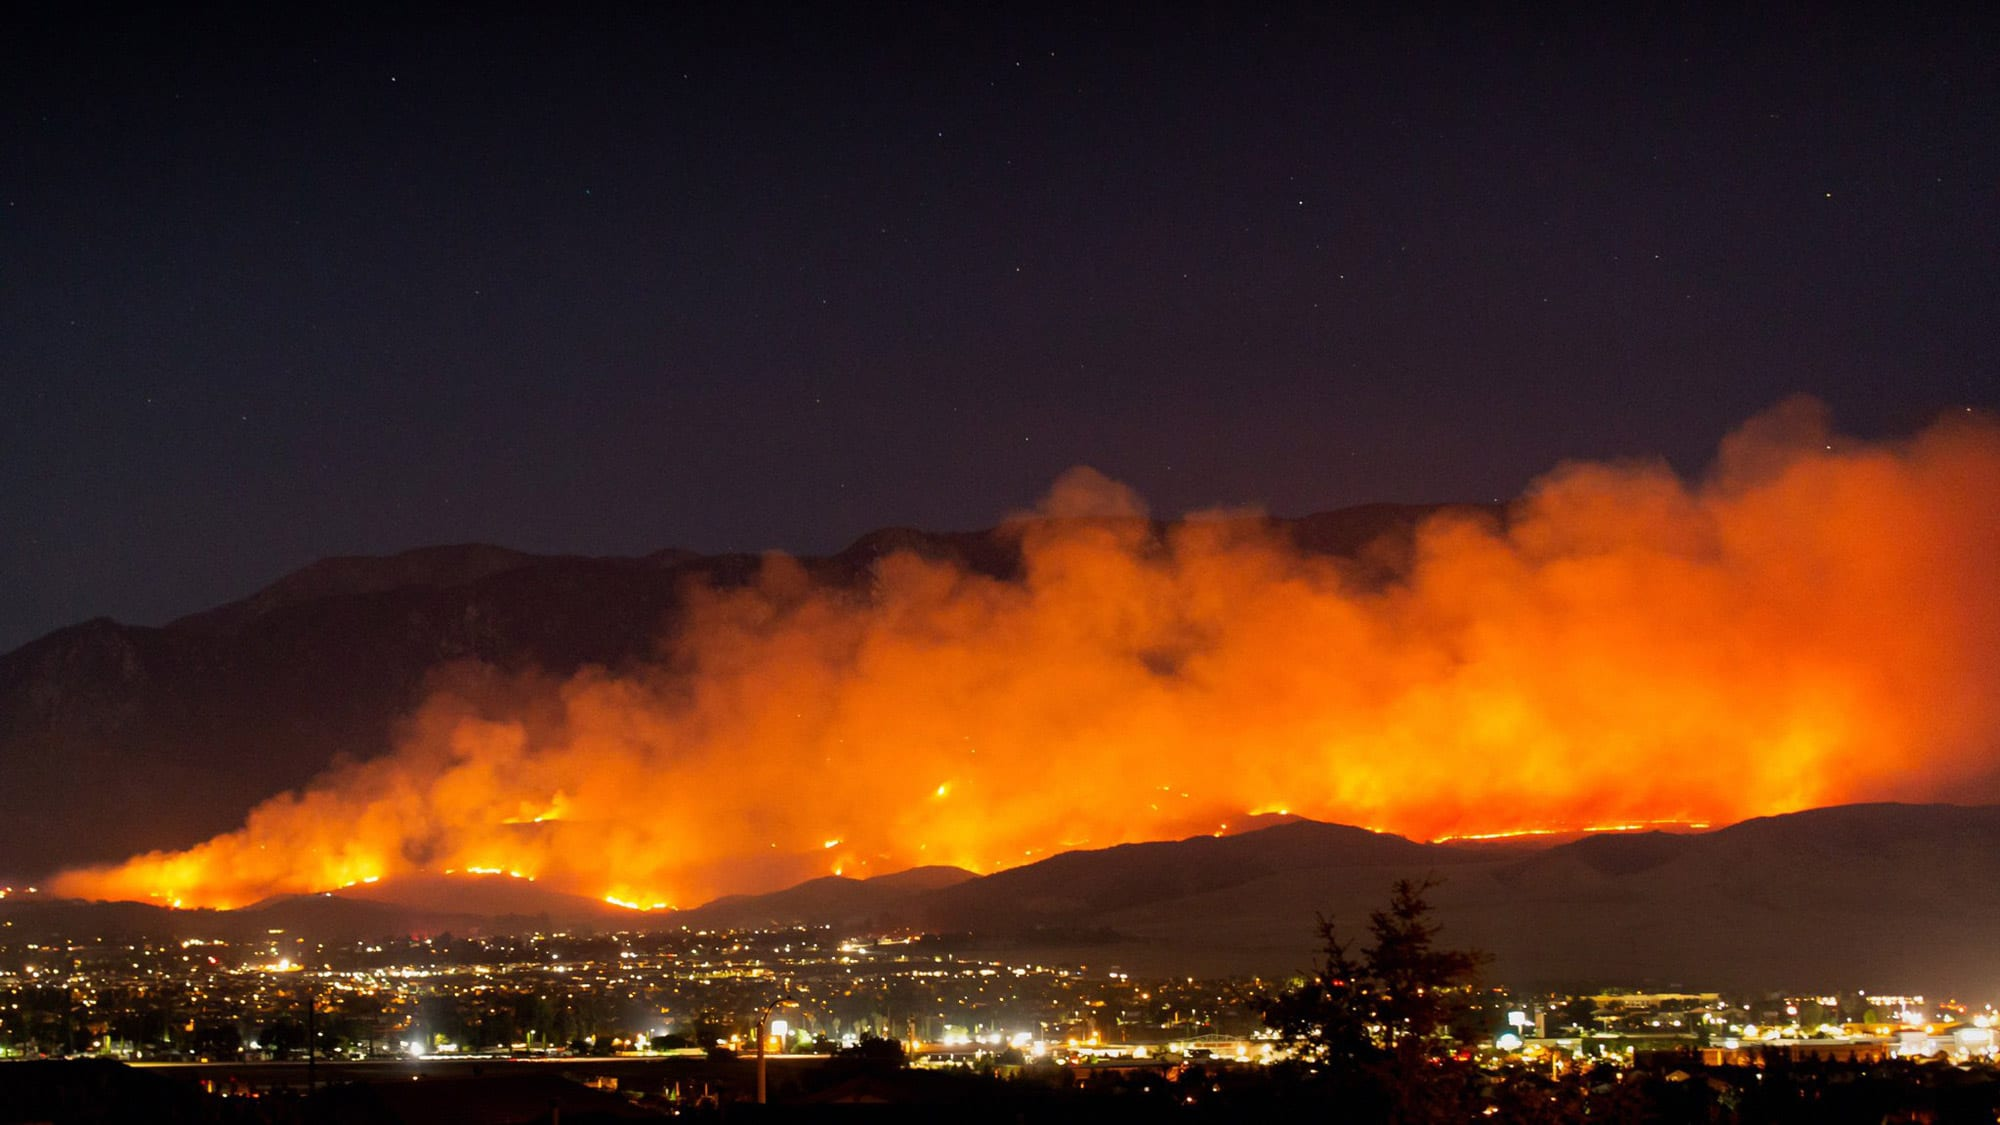 The Apple Fire burns into the night north of Beaumont on Friday, July 31, 2020. Taken by Brody Hessin WIKIMEDIA COMMONS